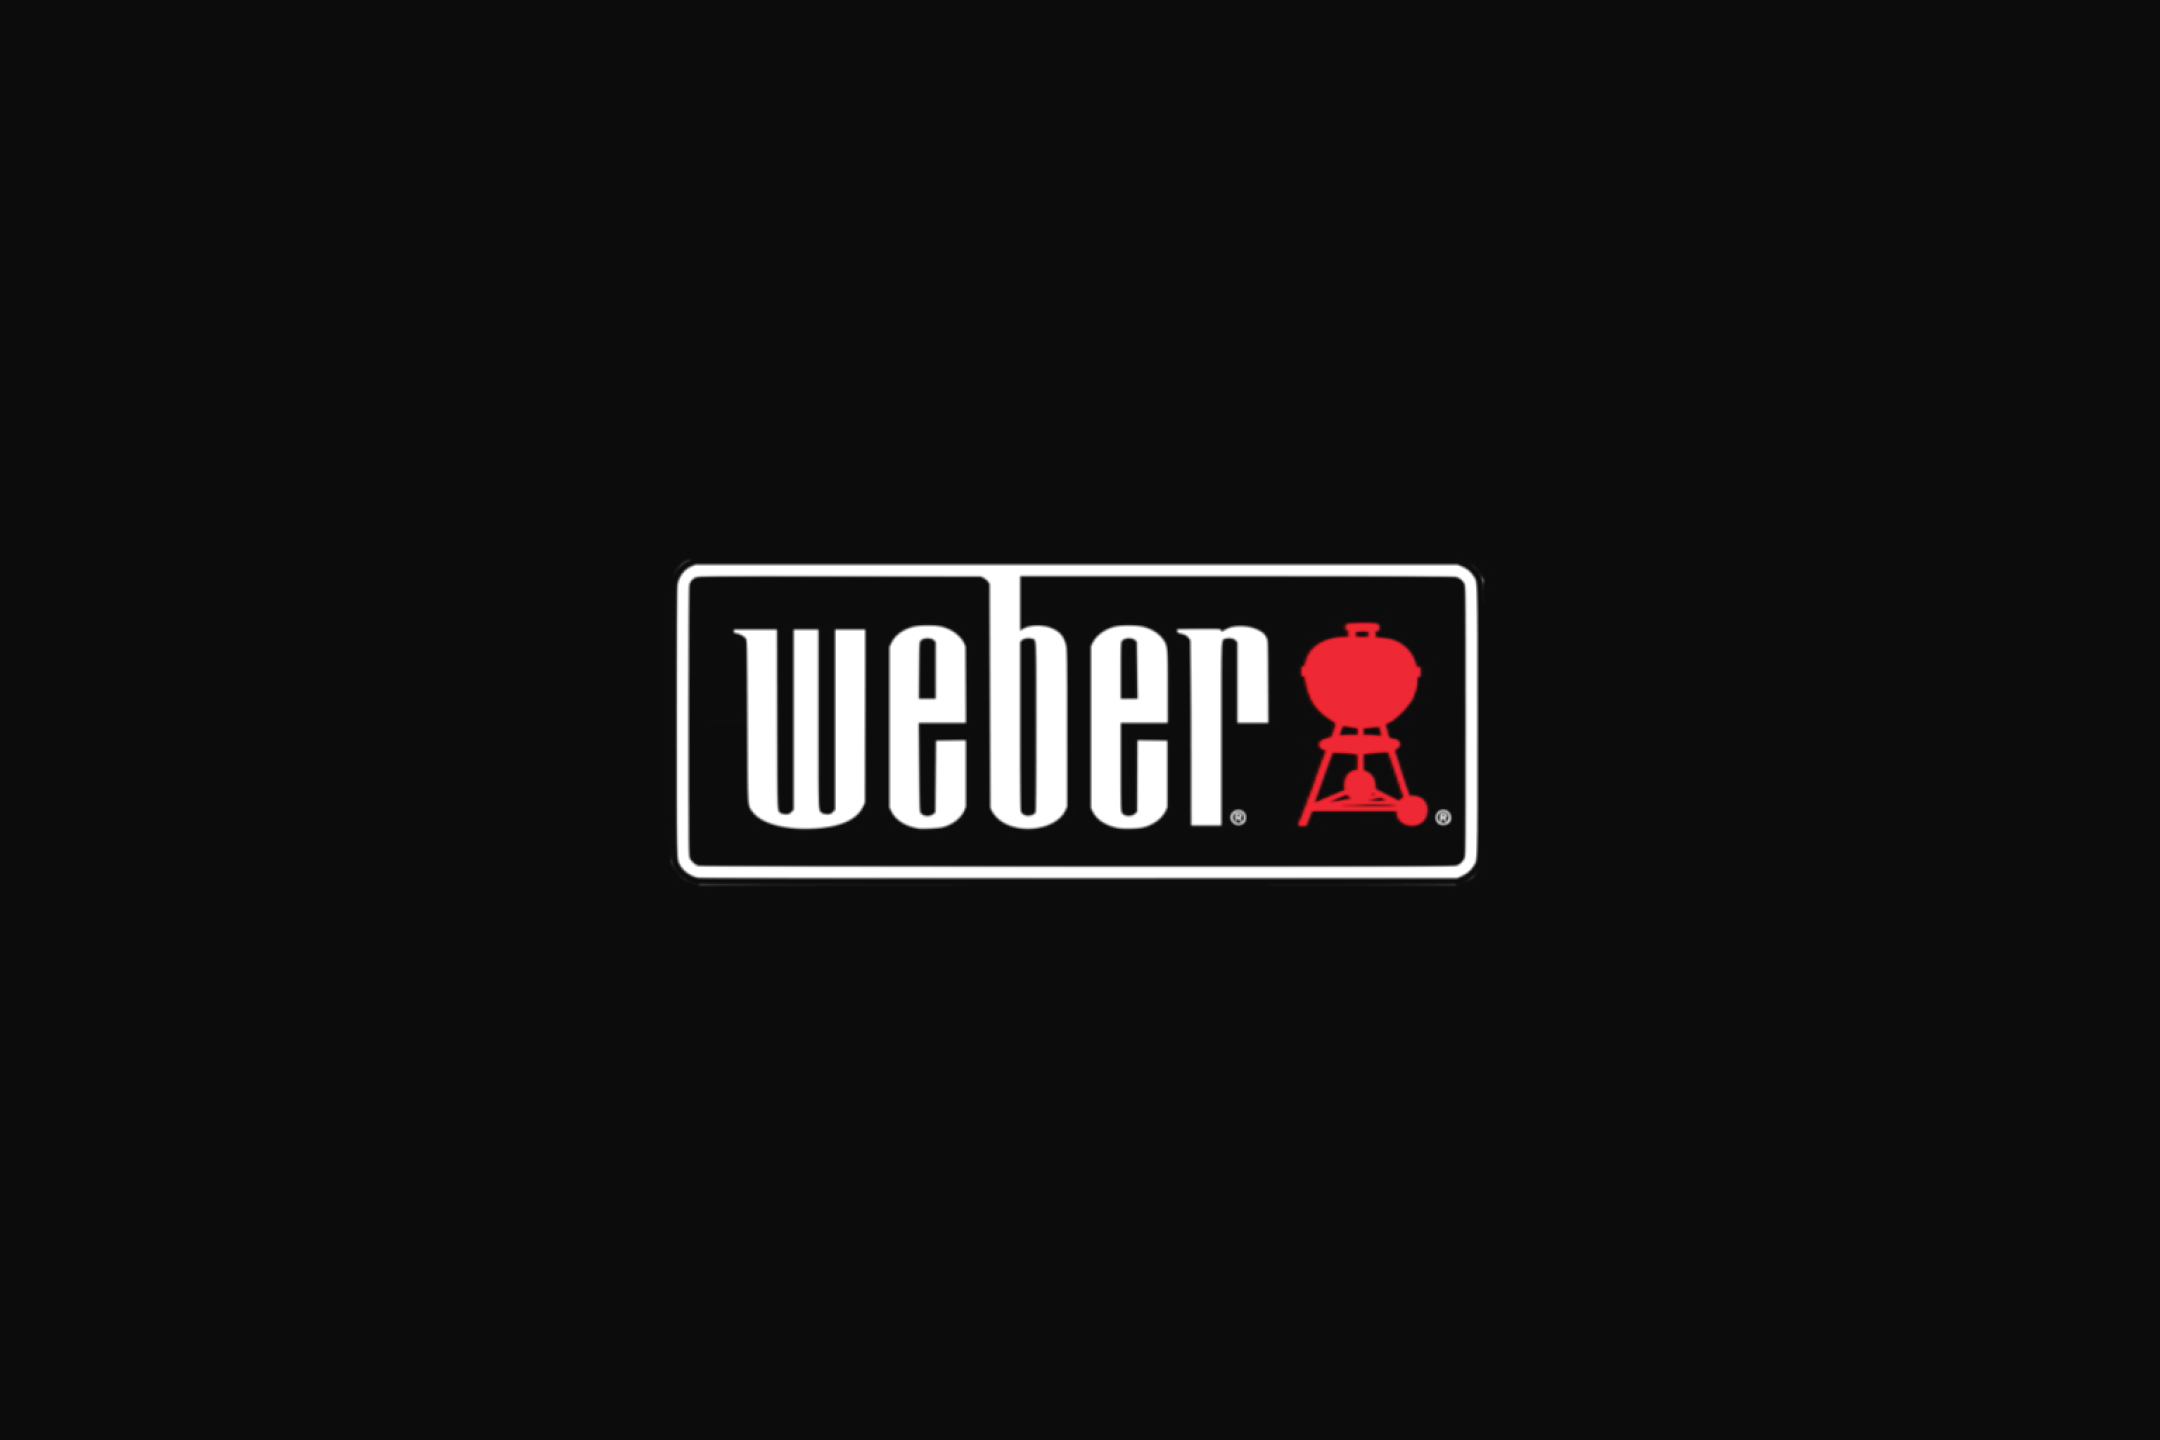 Weber: A cross-channel grilling experience